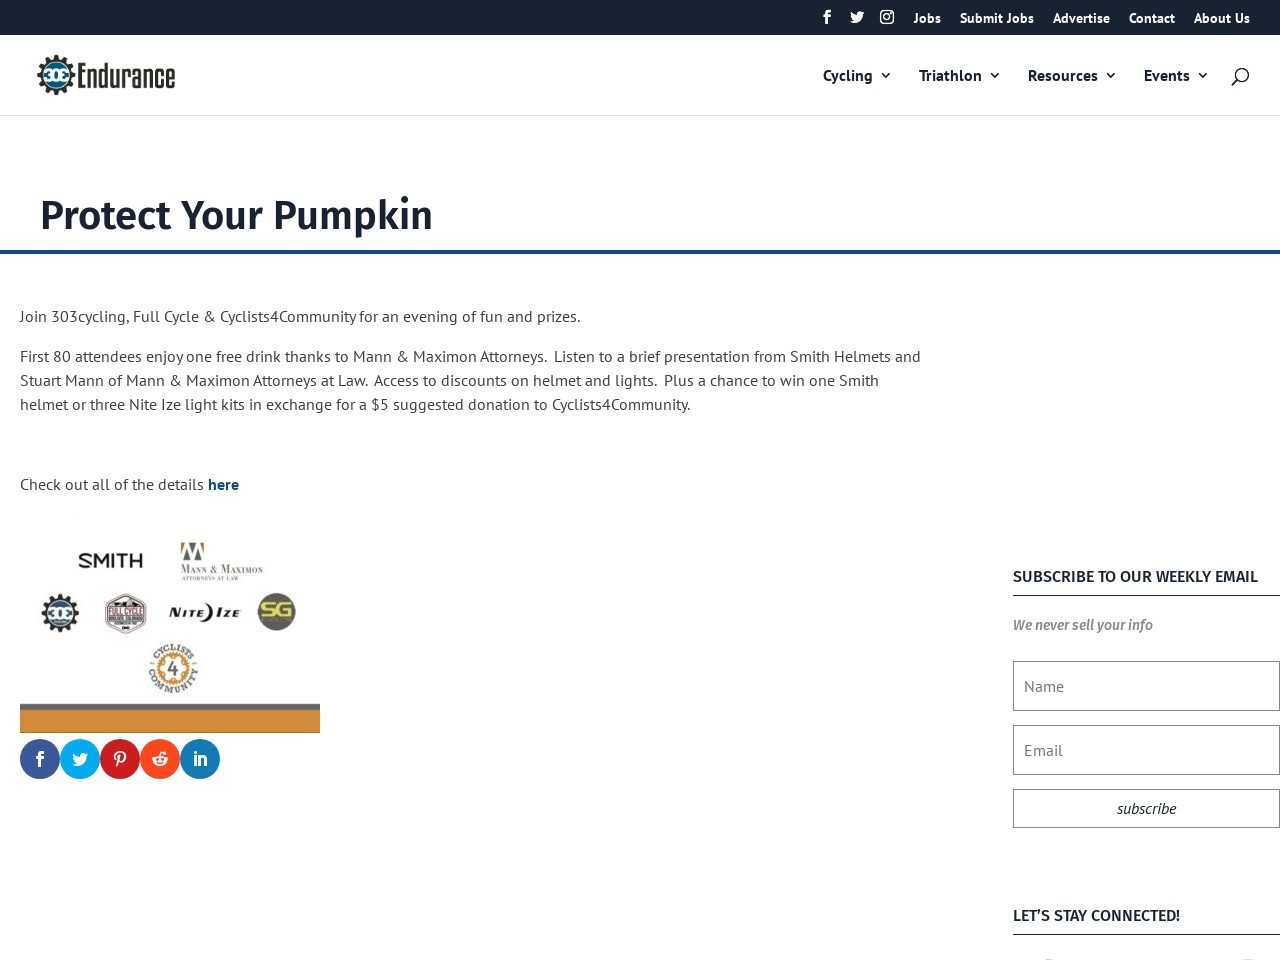 Protect Your Pumpkin